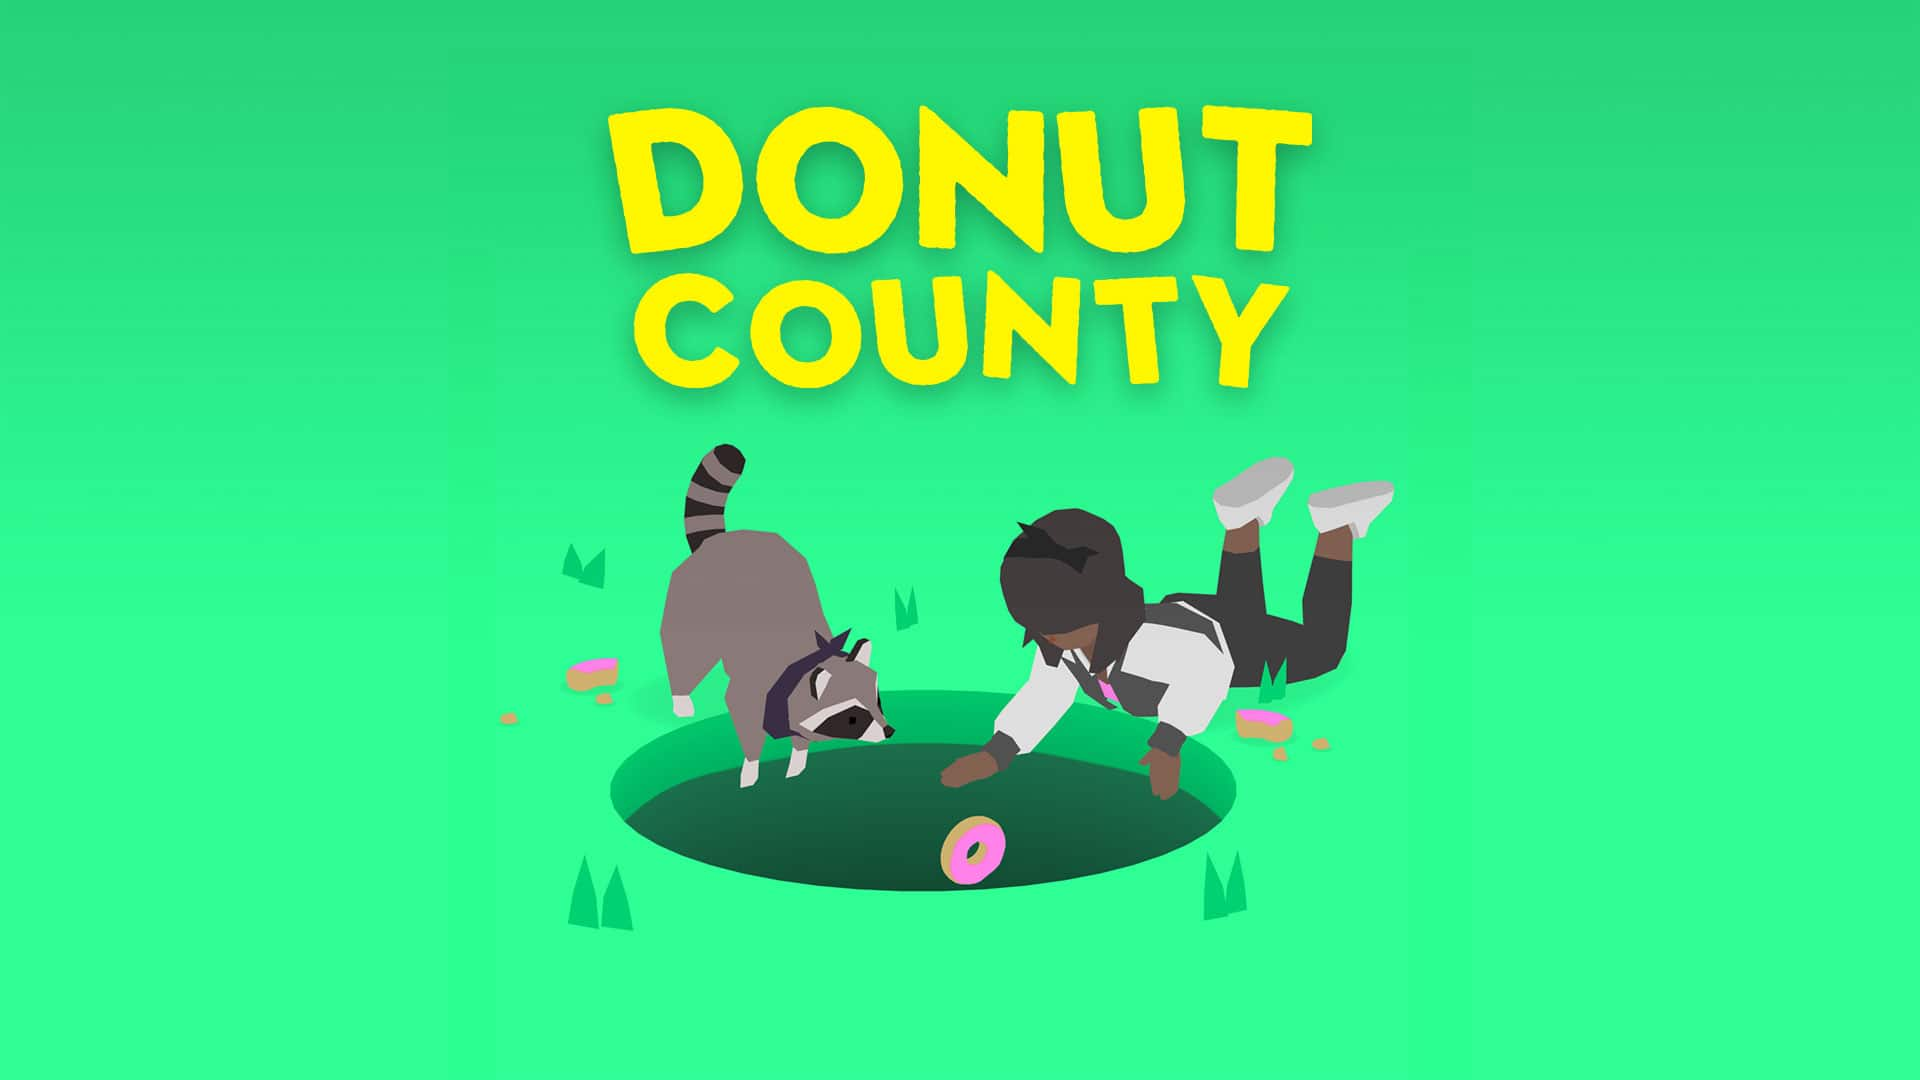 Donut County Nintendo Switch $6.49 (Lowest price ever on switch)